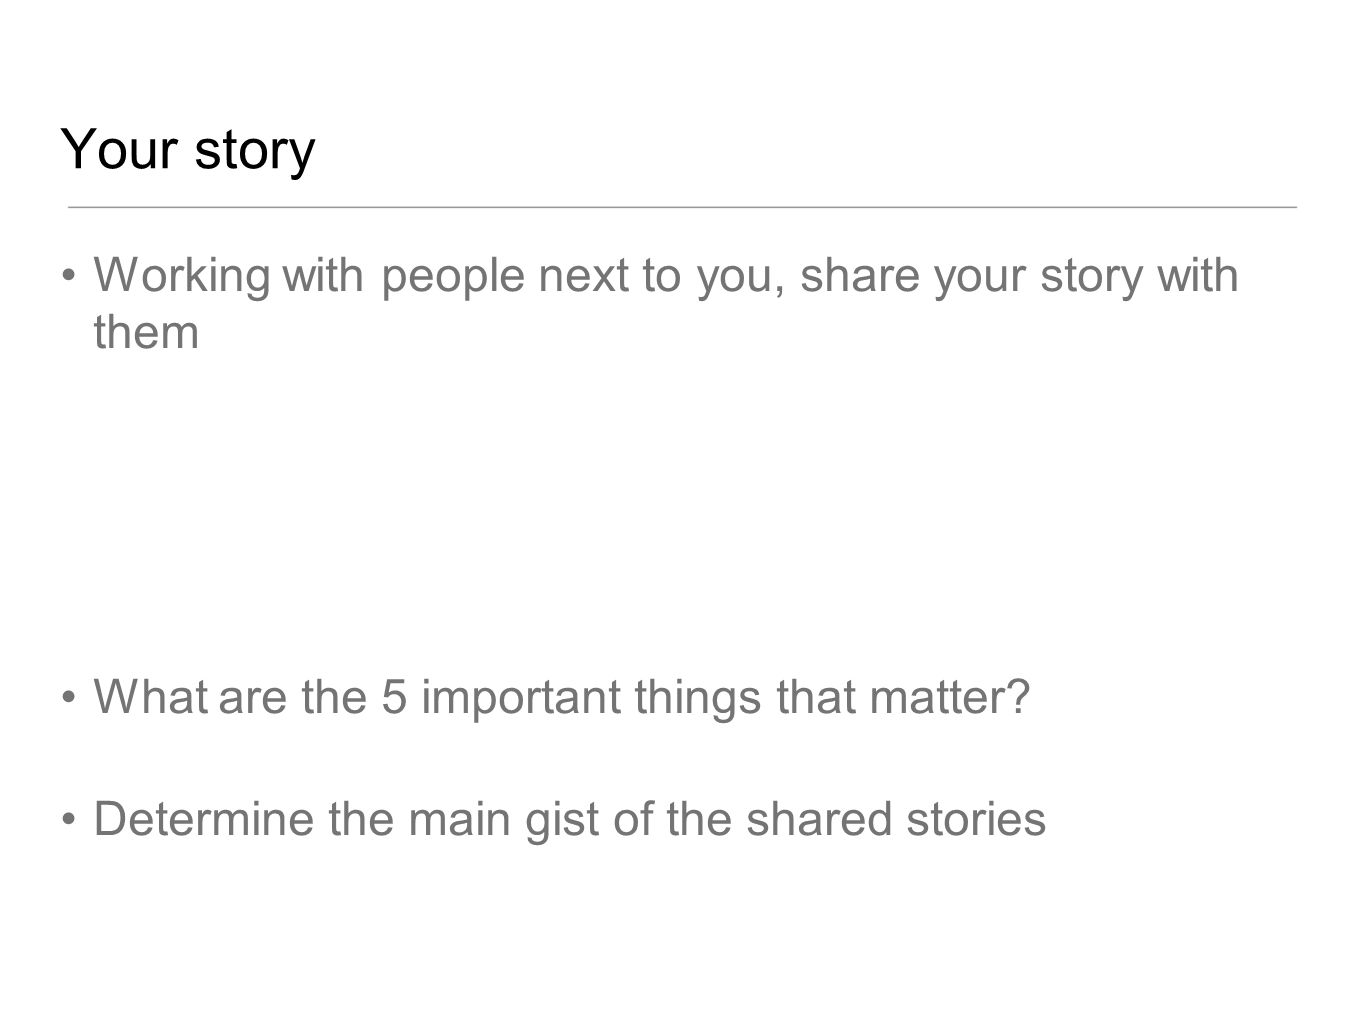 Your story Working with people next to you, share your story with them